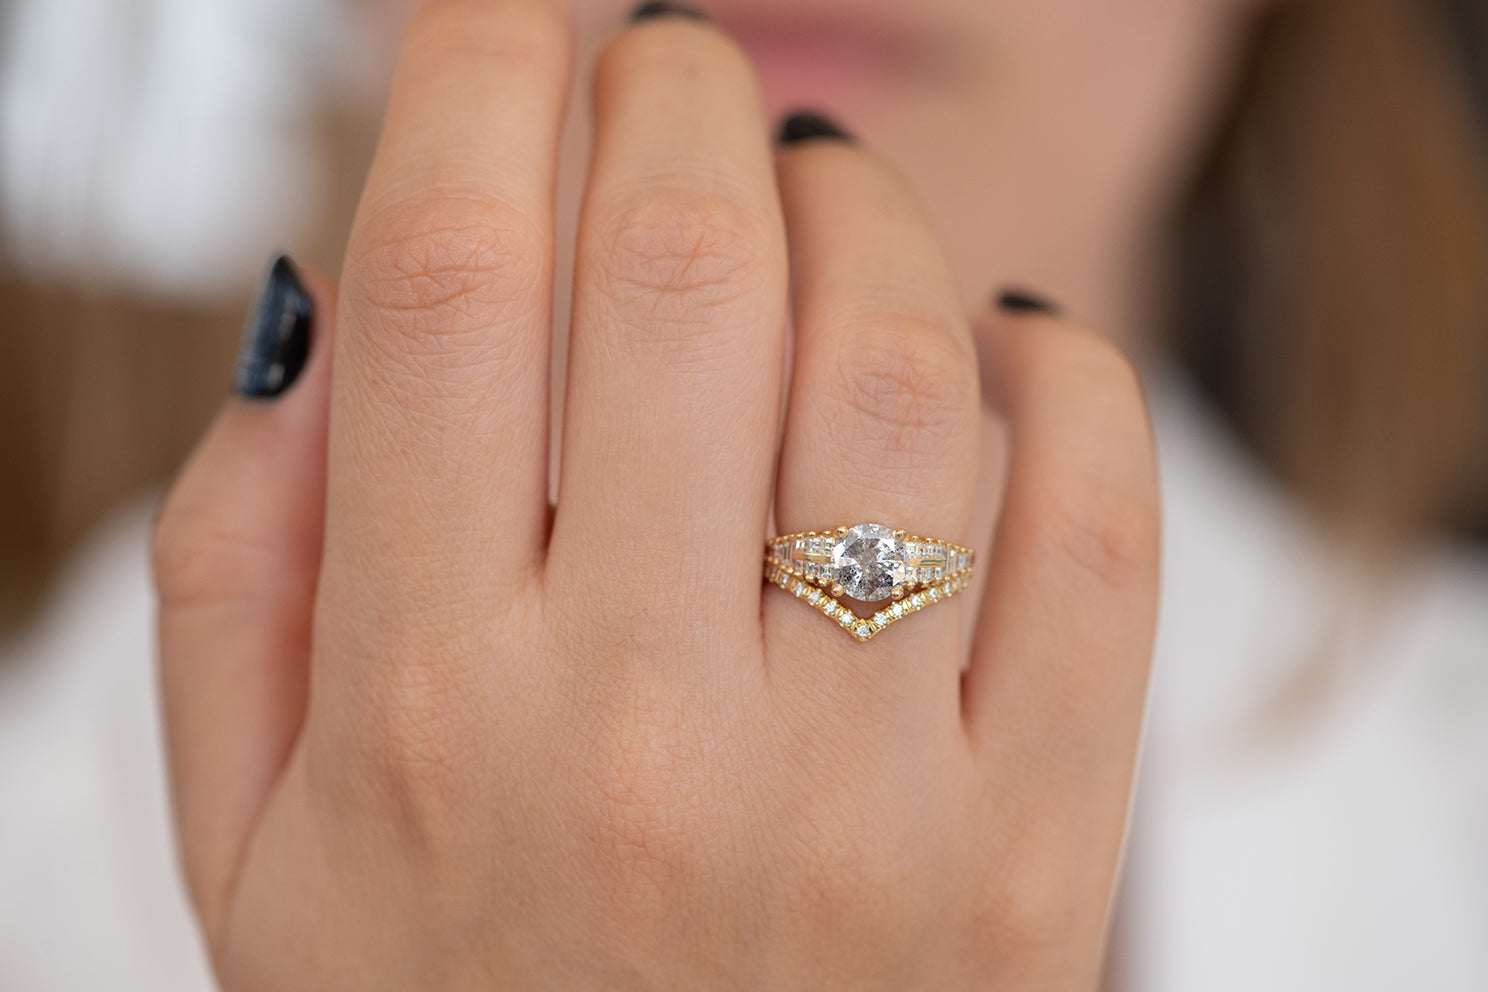 One Carat Diamond Ring with a Snowy Diamond on Hand front shot detail view